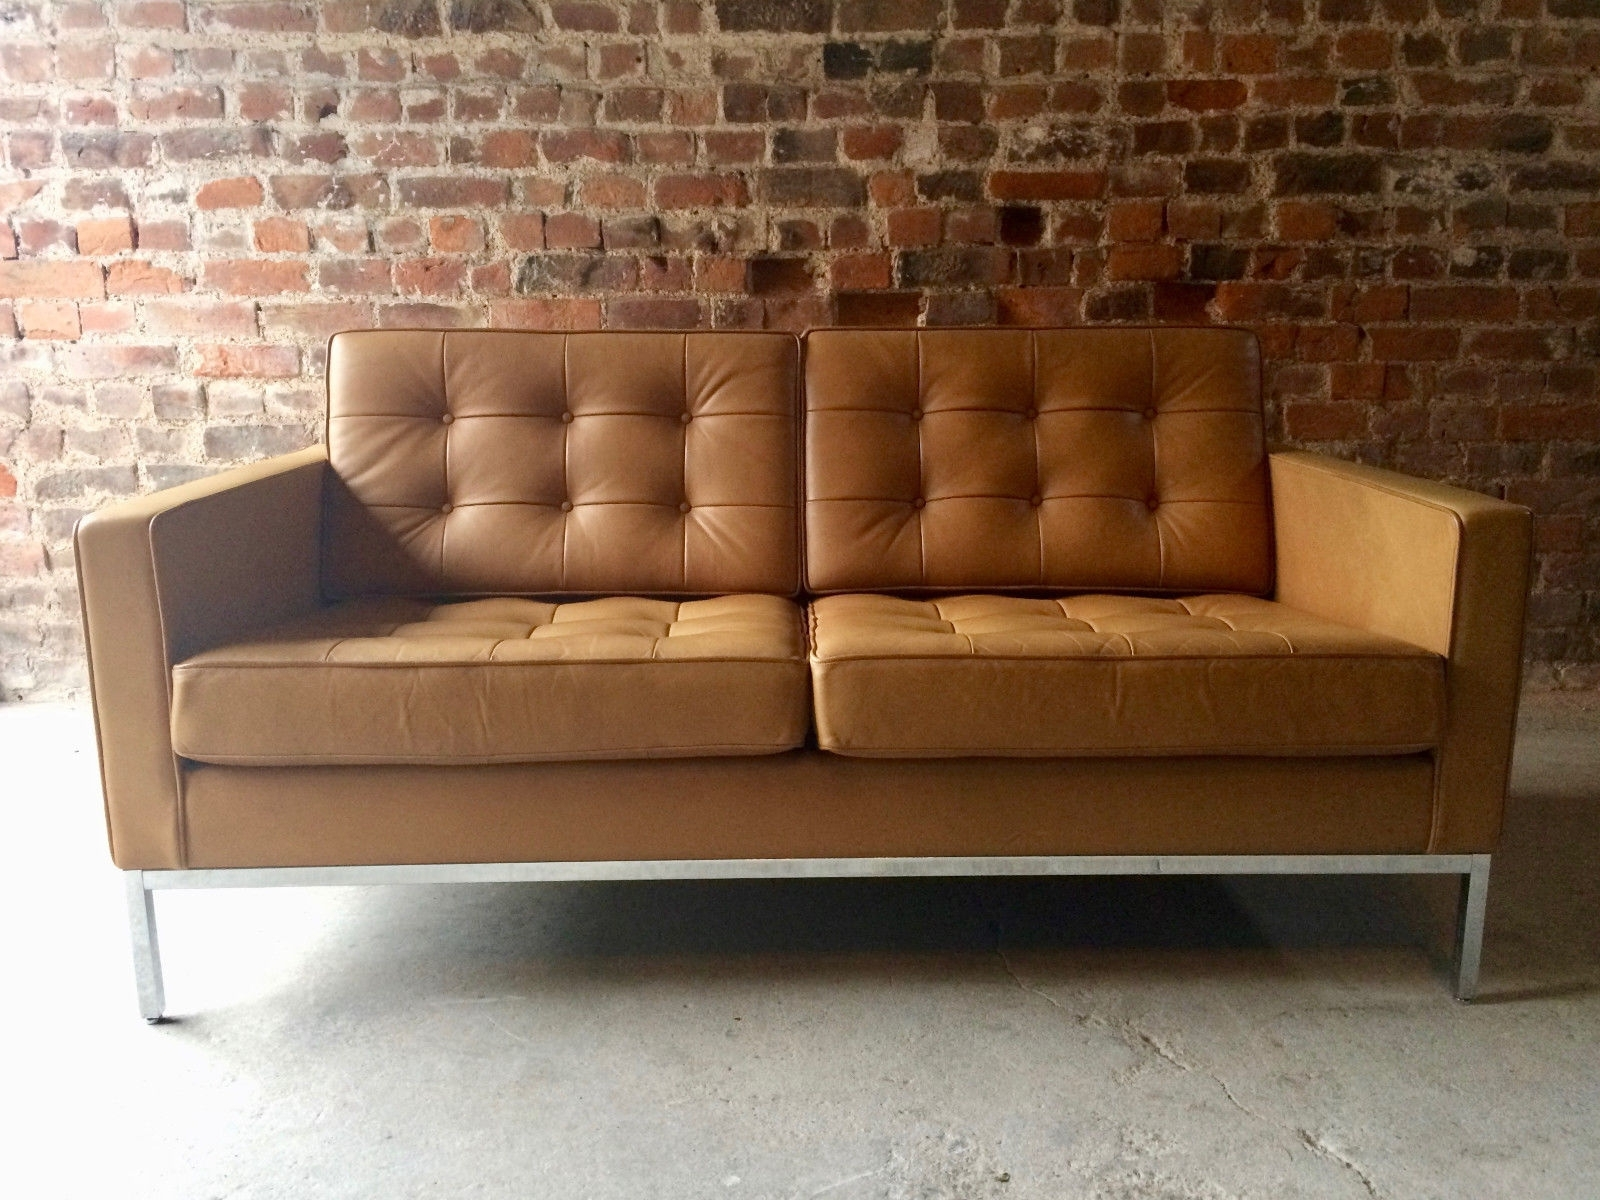 Well Known Florence Knoll Leather Sofas In Vintage 2 Seater Leather Sofaflorence Knoll For Knoll For Sale (View 8 of 20)